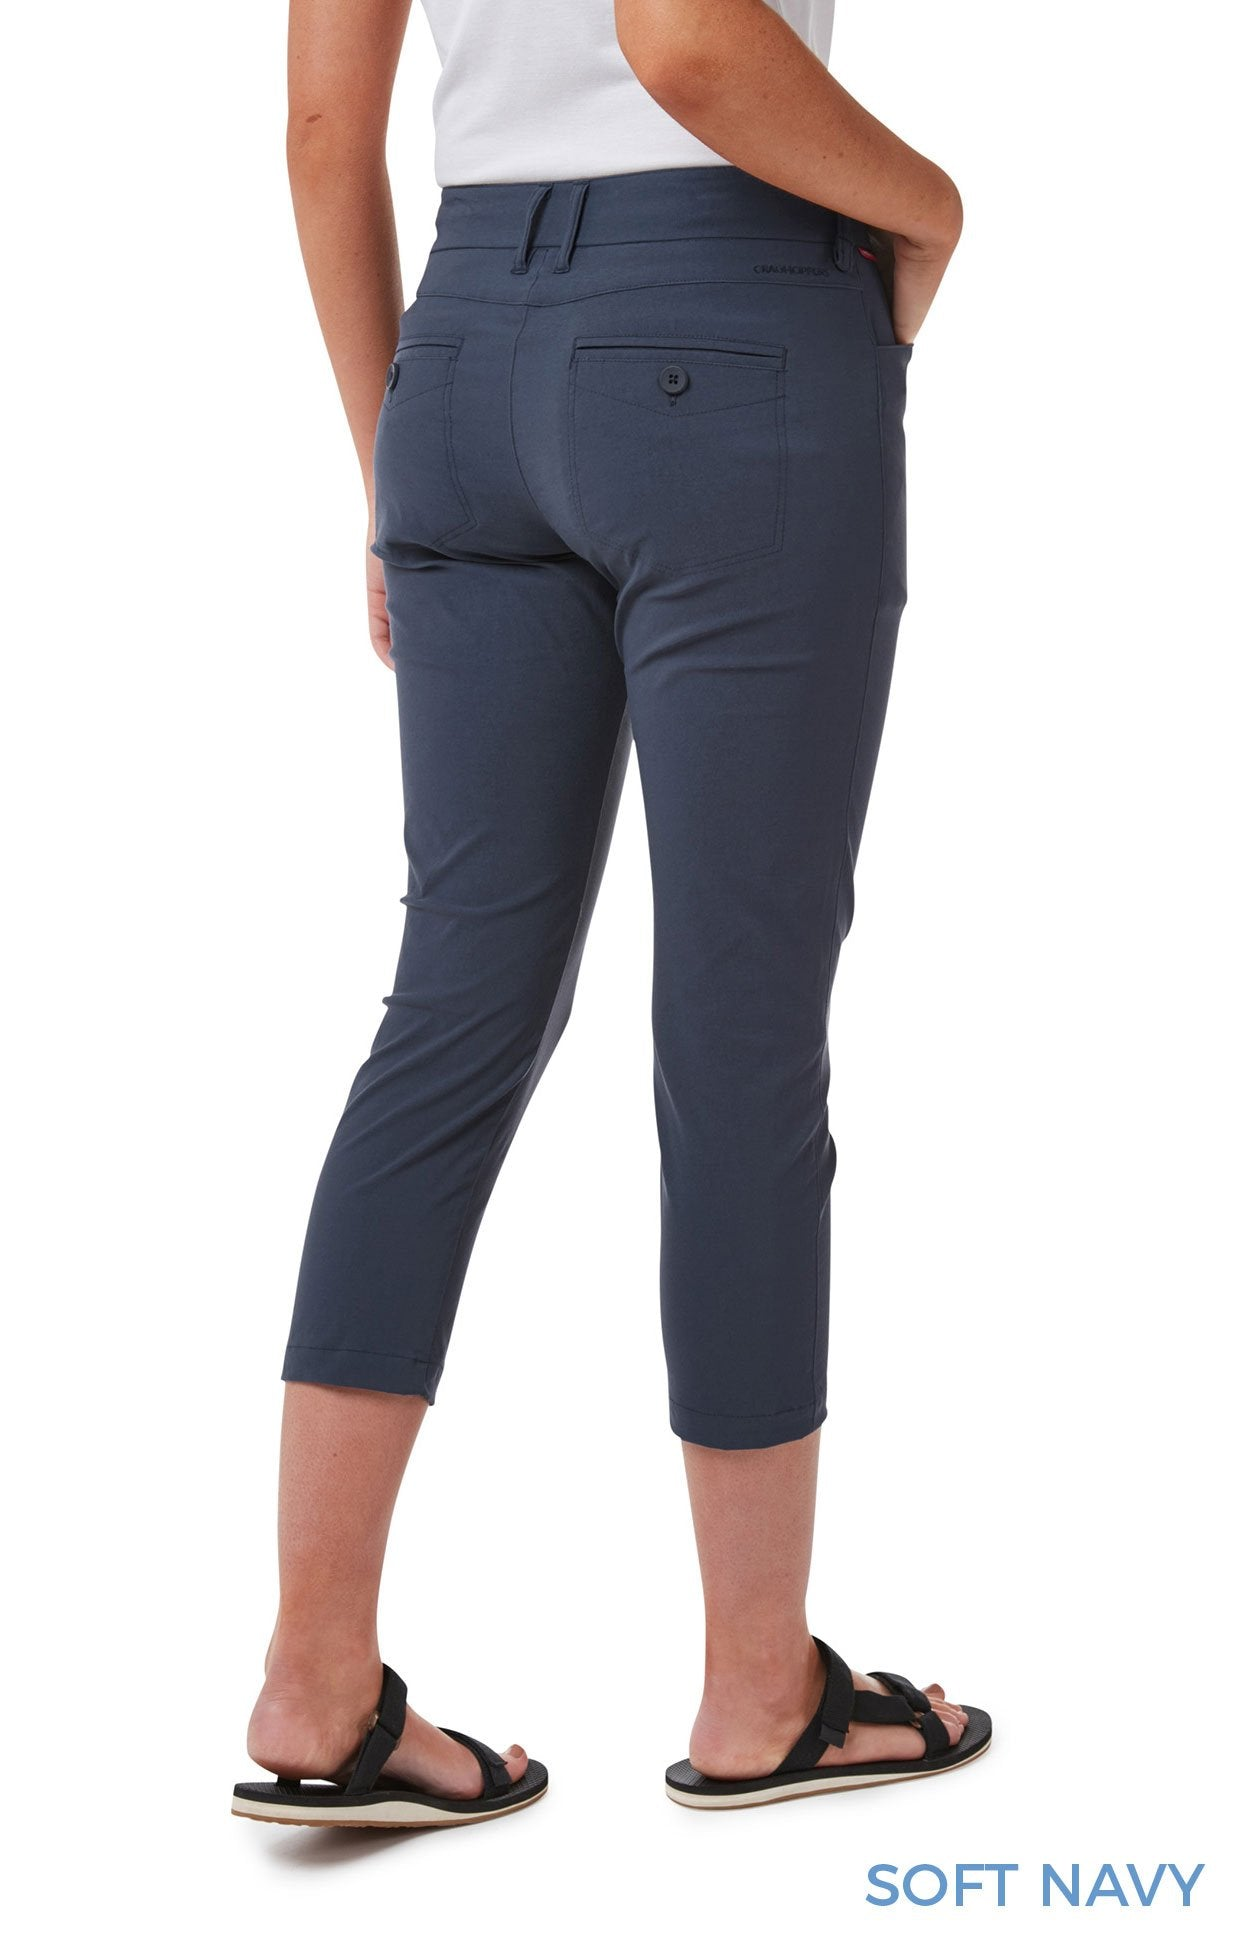 Rear Soft Navy